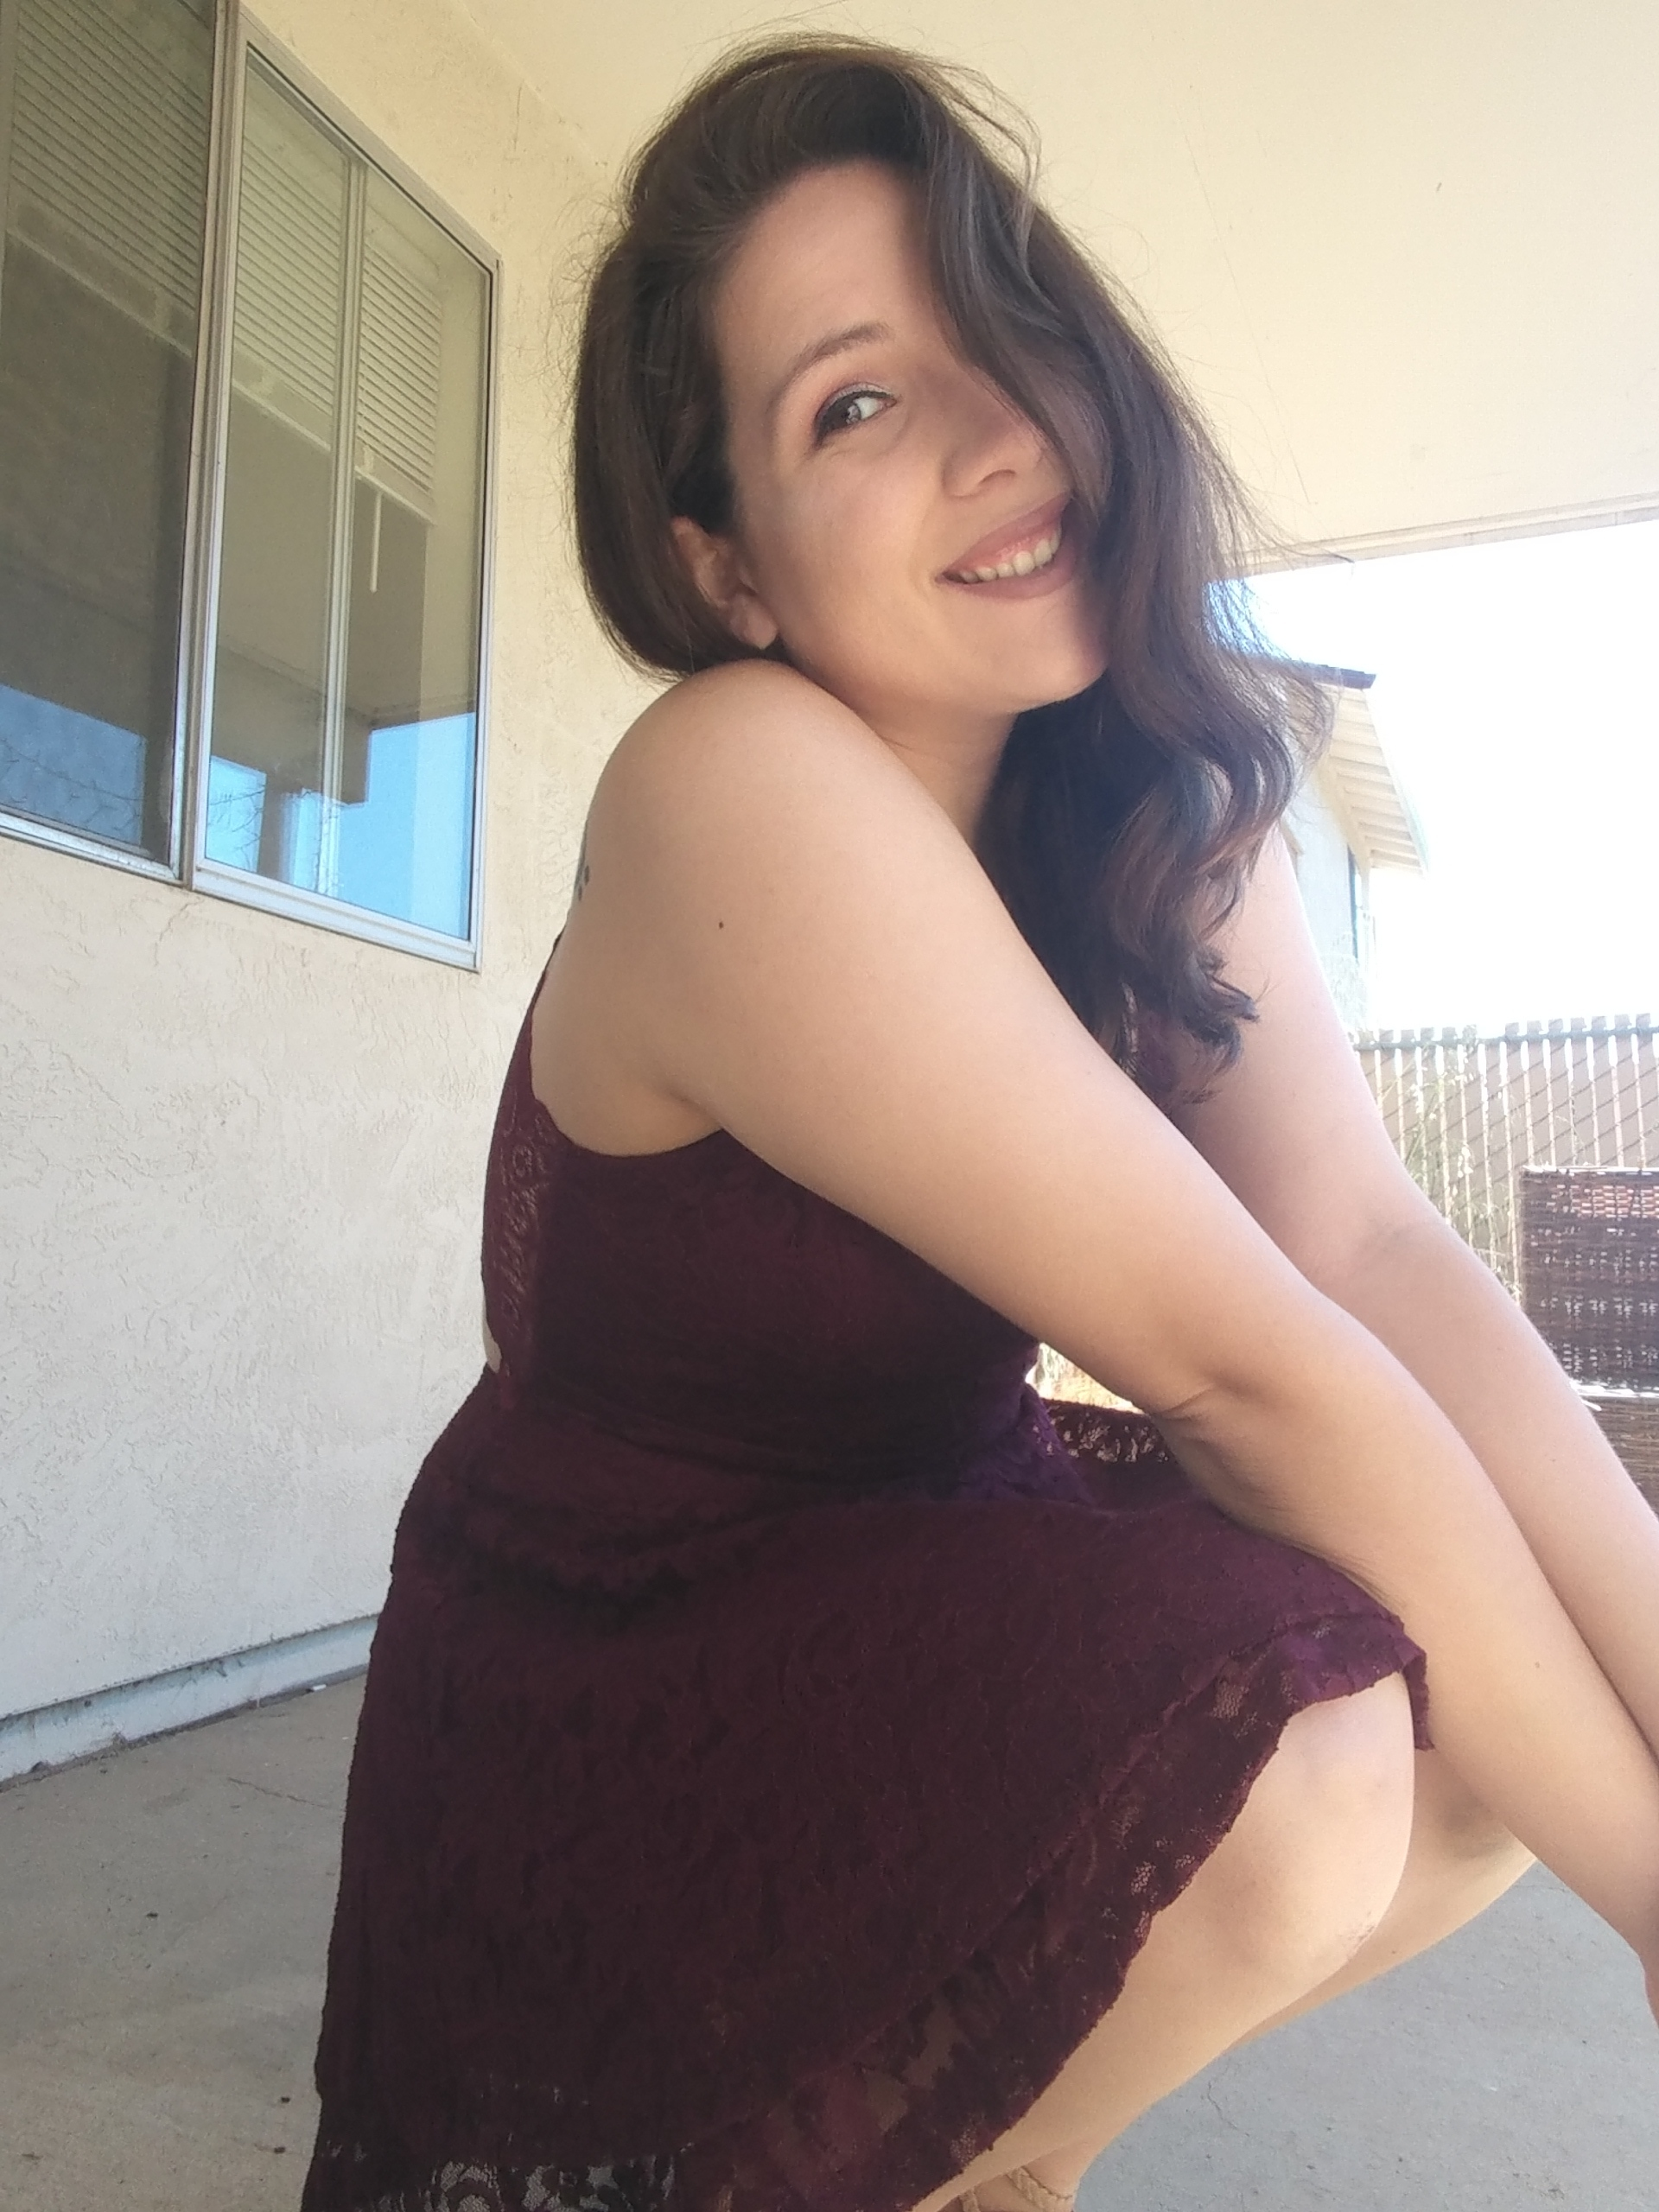 24-year-old, Single From: Marina, CA, United States